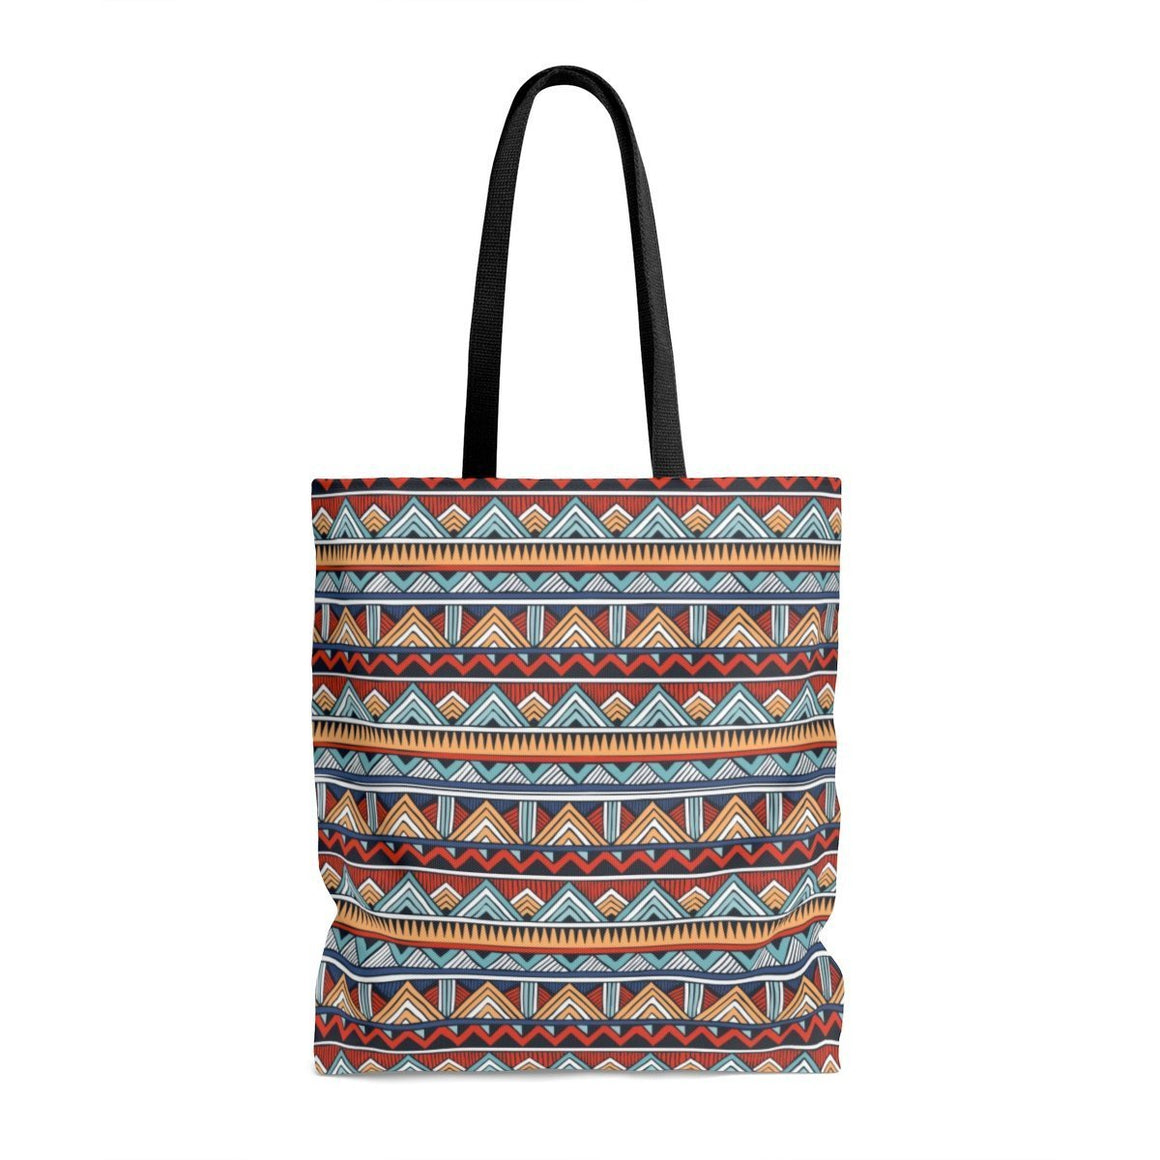 Red & Blue Tribal Tote Bags Large